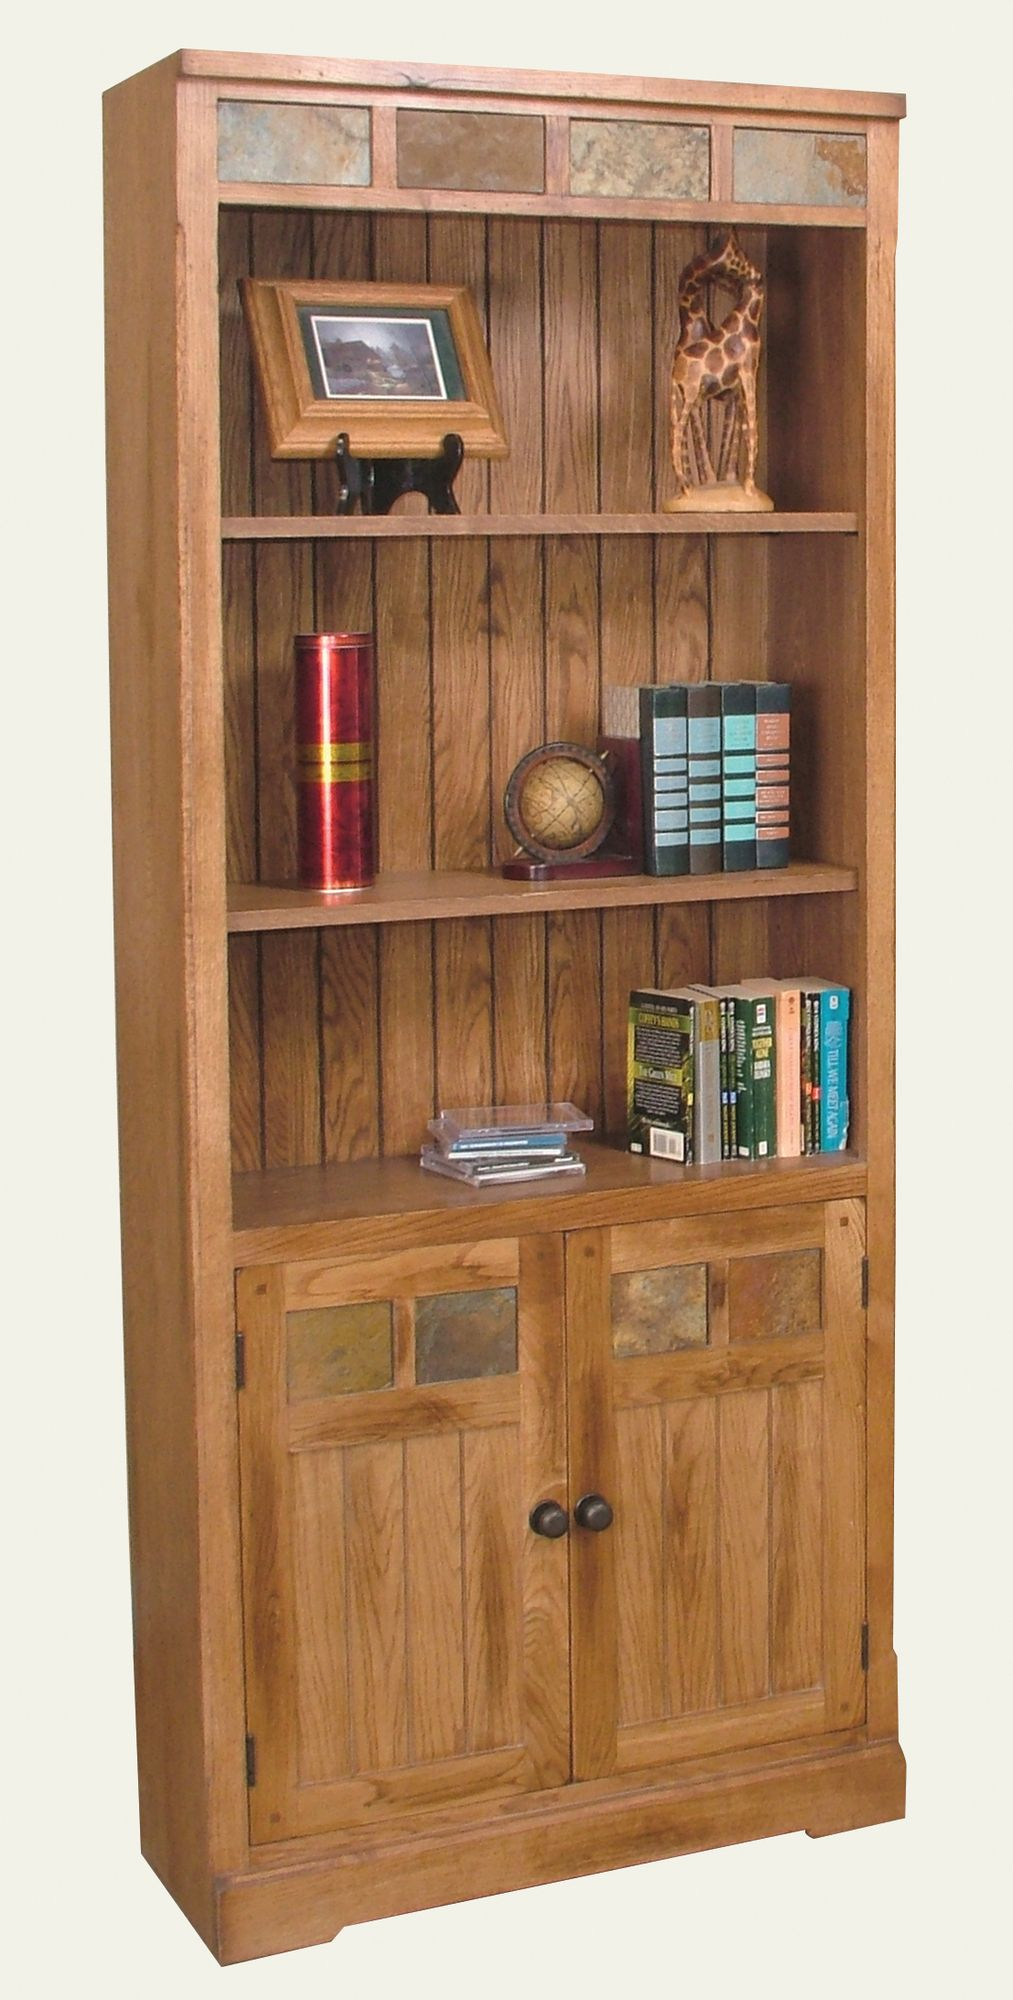 office bookcases with doors. Sunny Designs Sedona Bookcase With Doors In Distressed Oak Office Bookcases